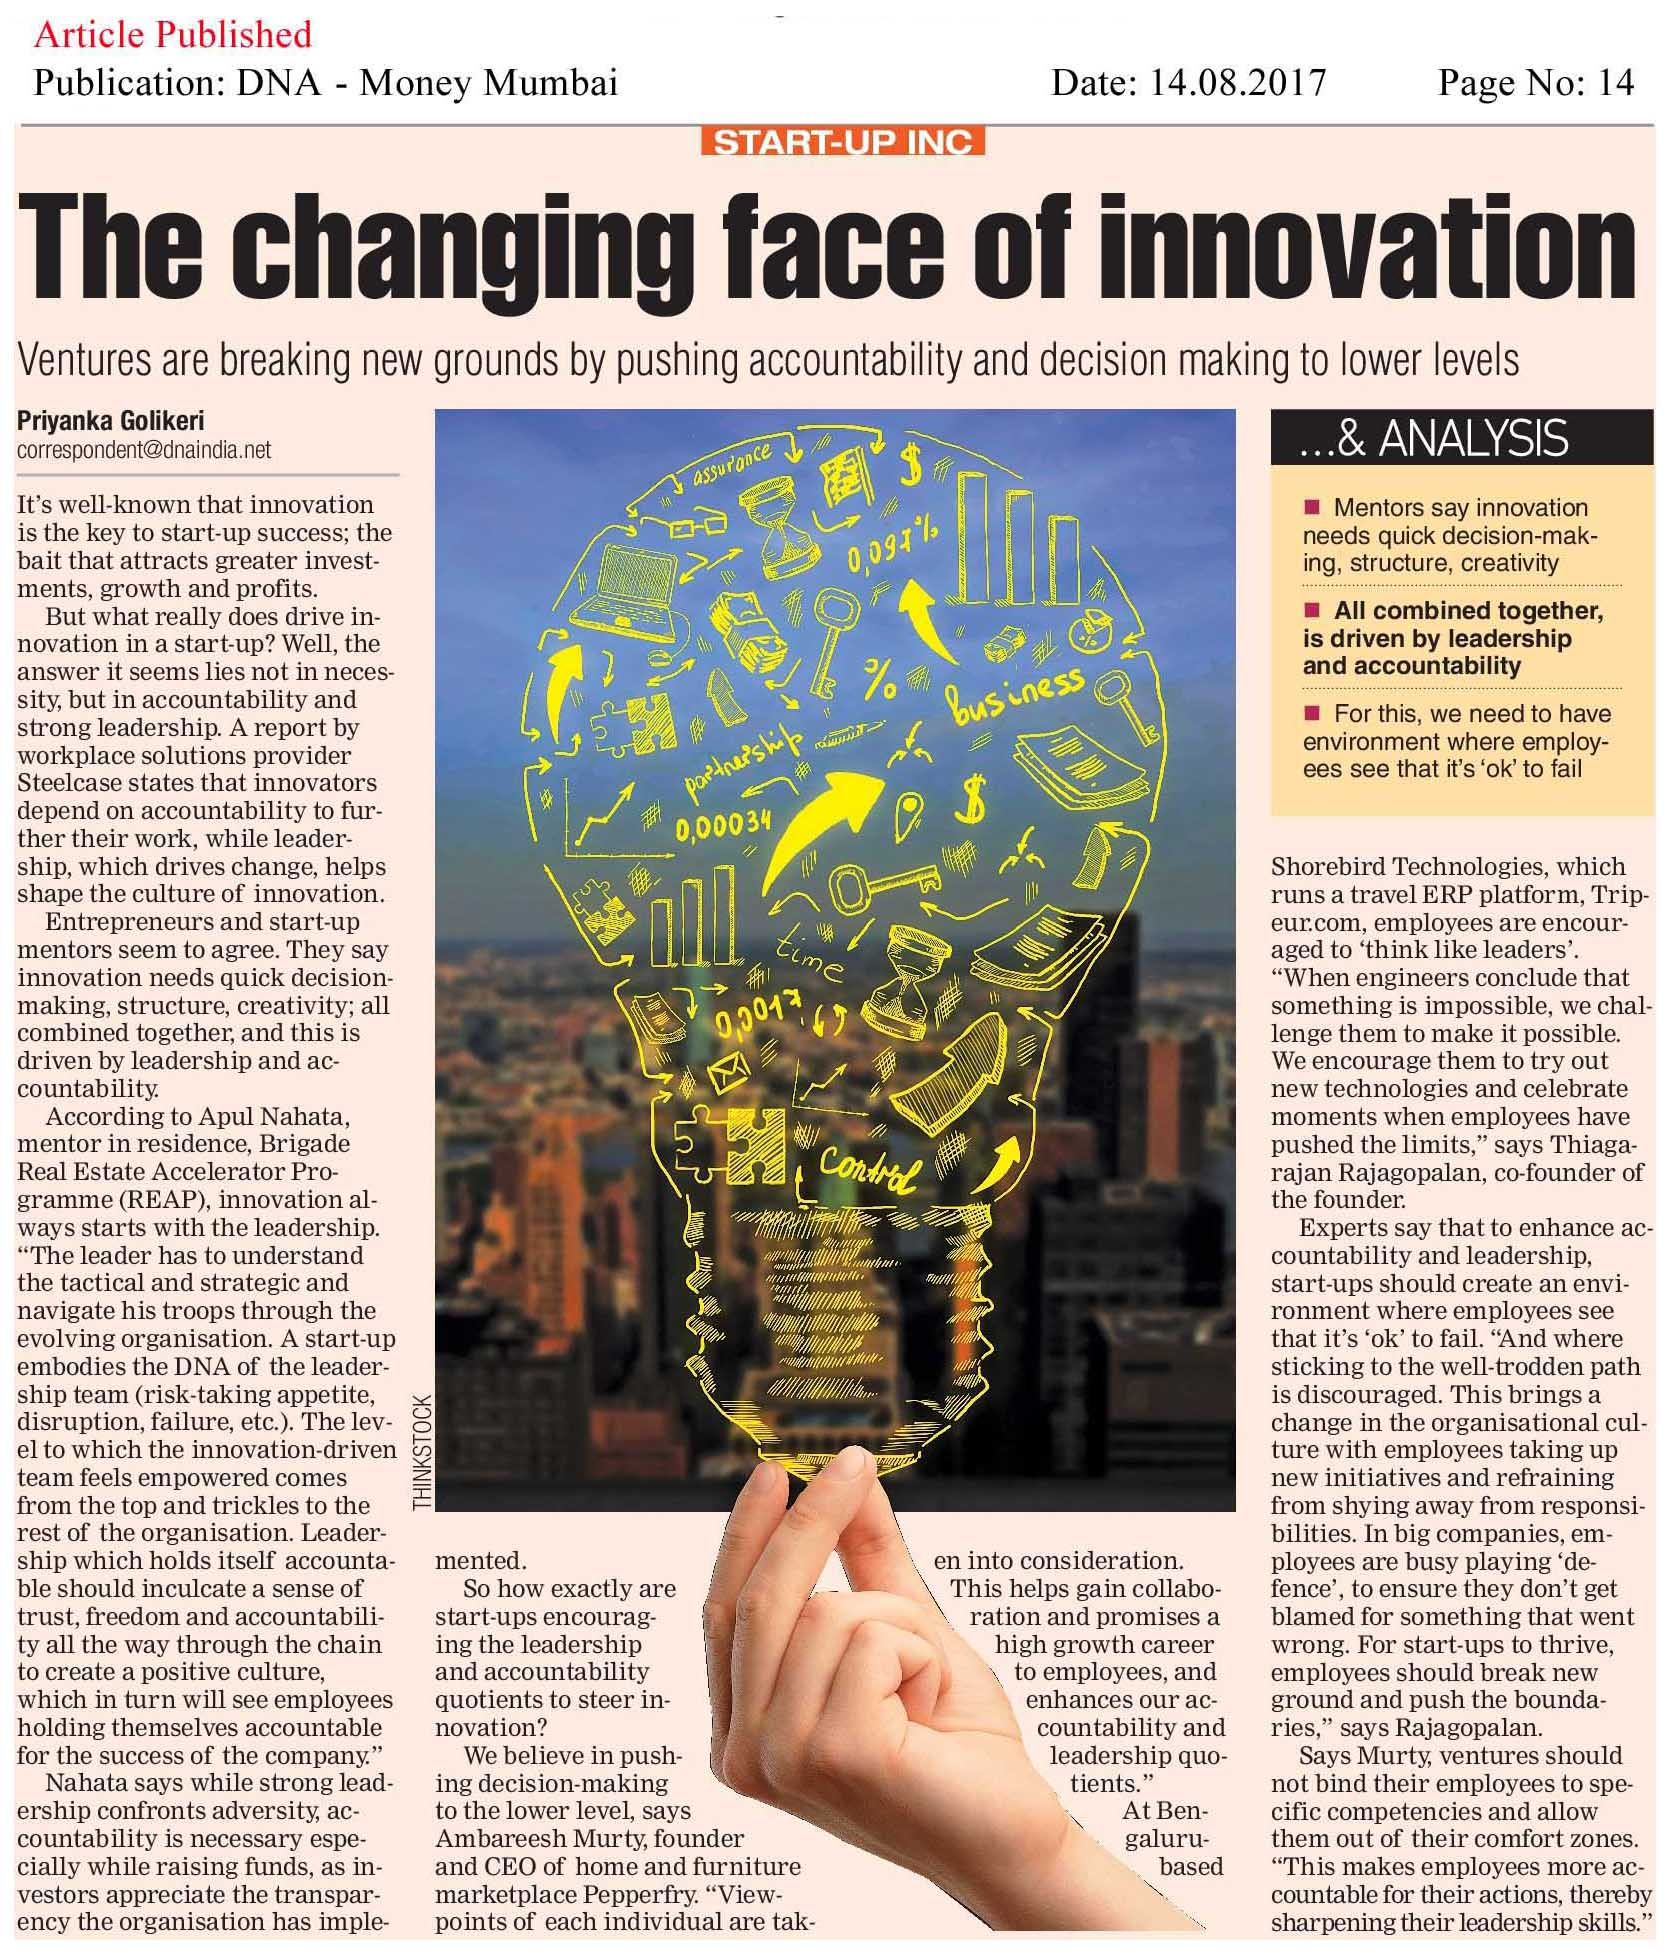 The changing face of innovation—DNA-Money Mumbai